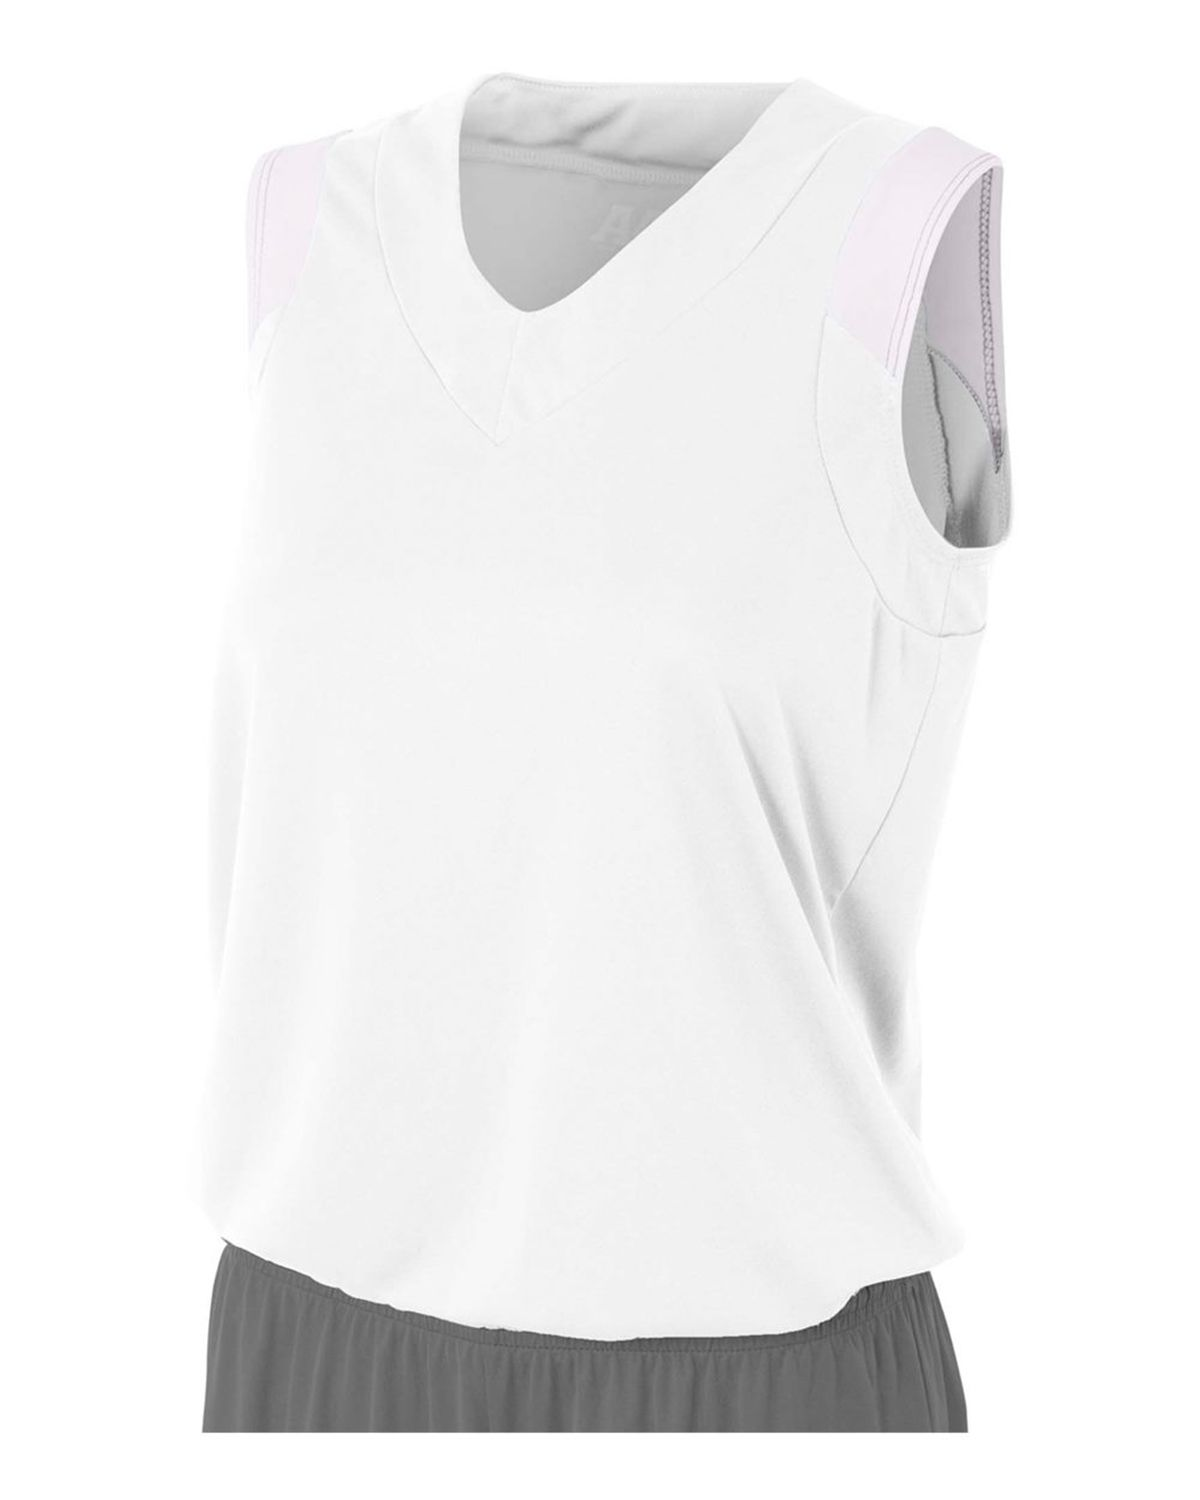 A4 NW2340 Women's Moisture Management V-Neck Muscle